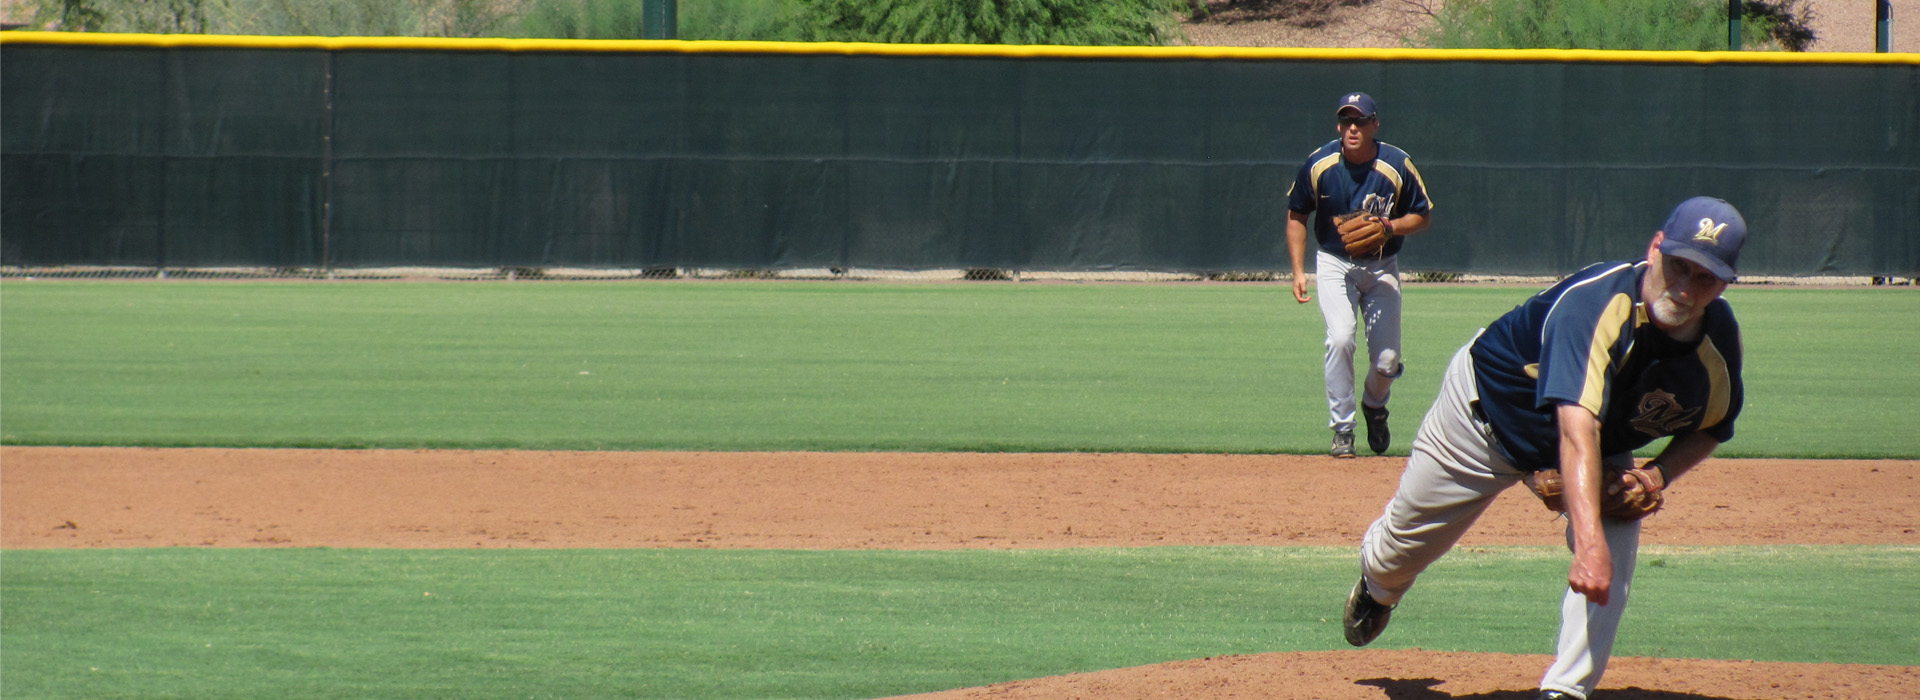 Arizona-Mens-Senior-Baseball-League-AZMSBL-Homepage4